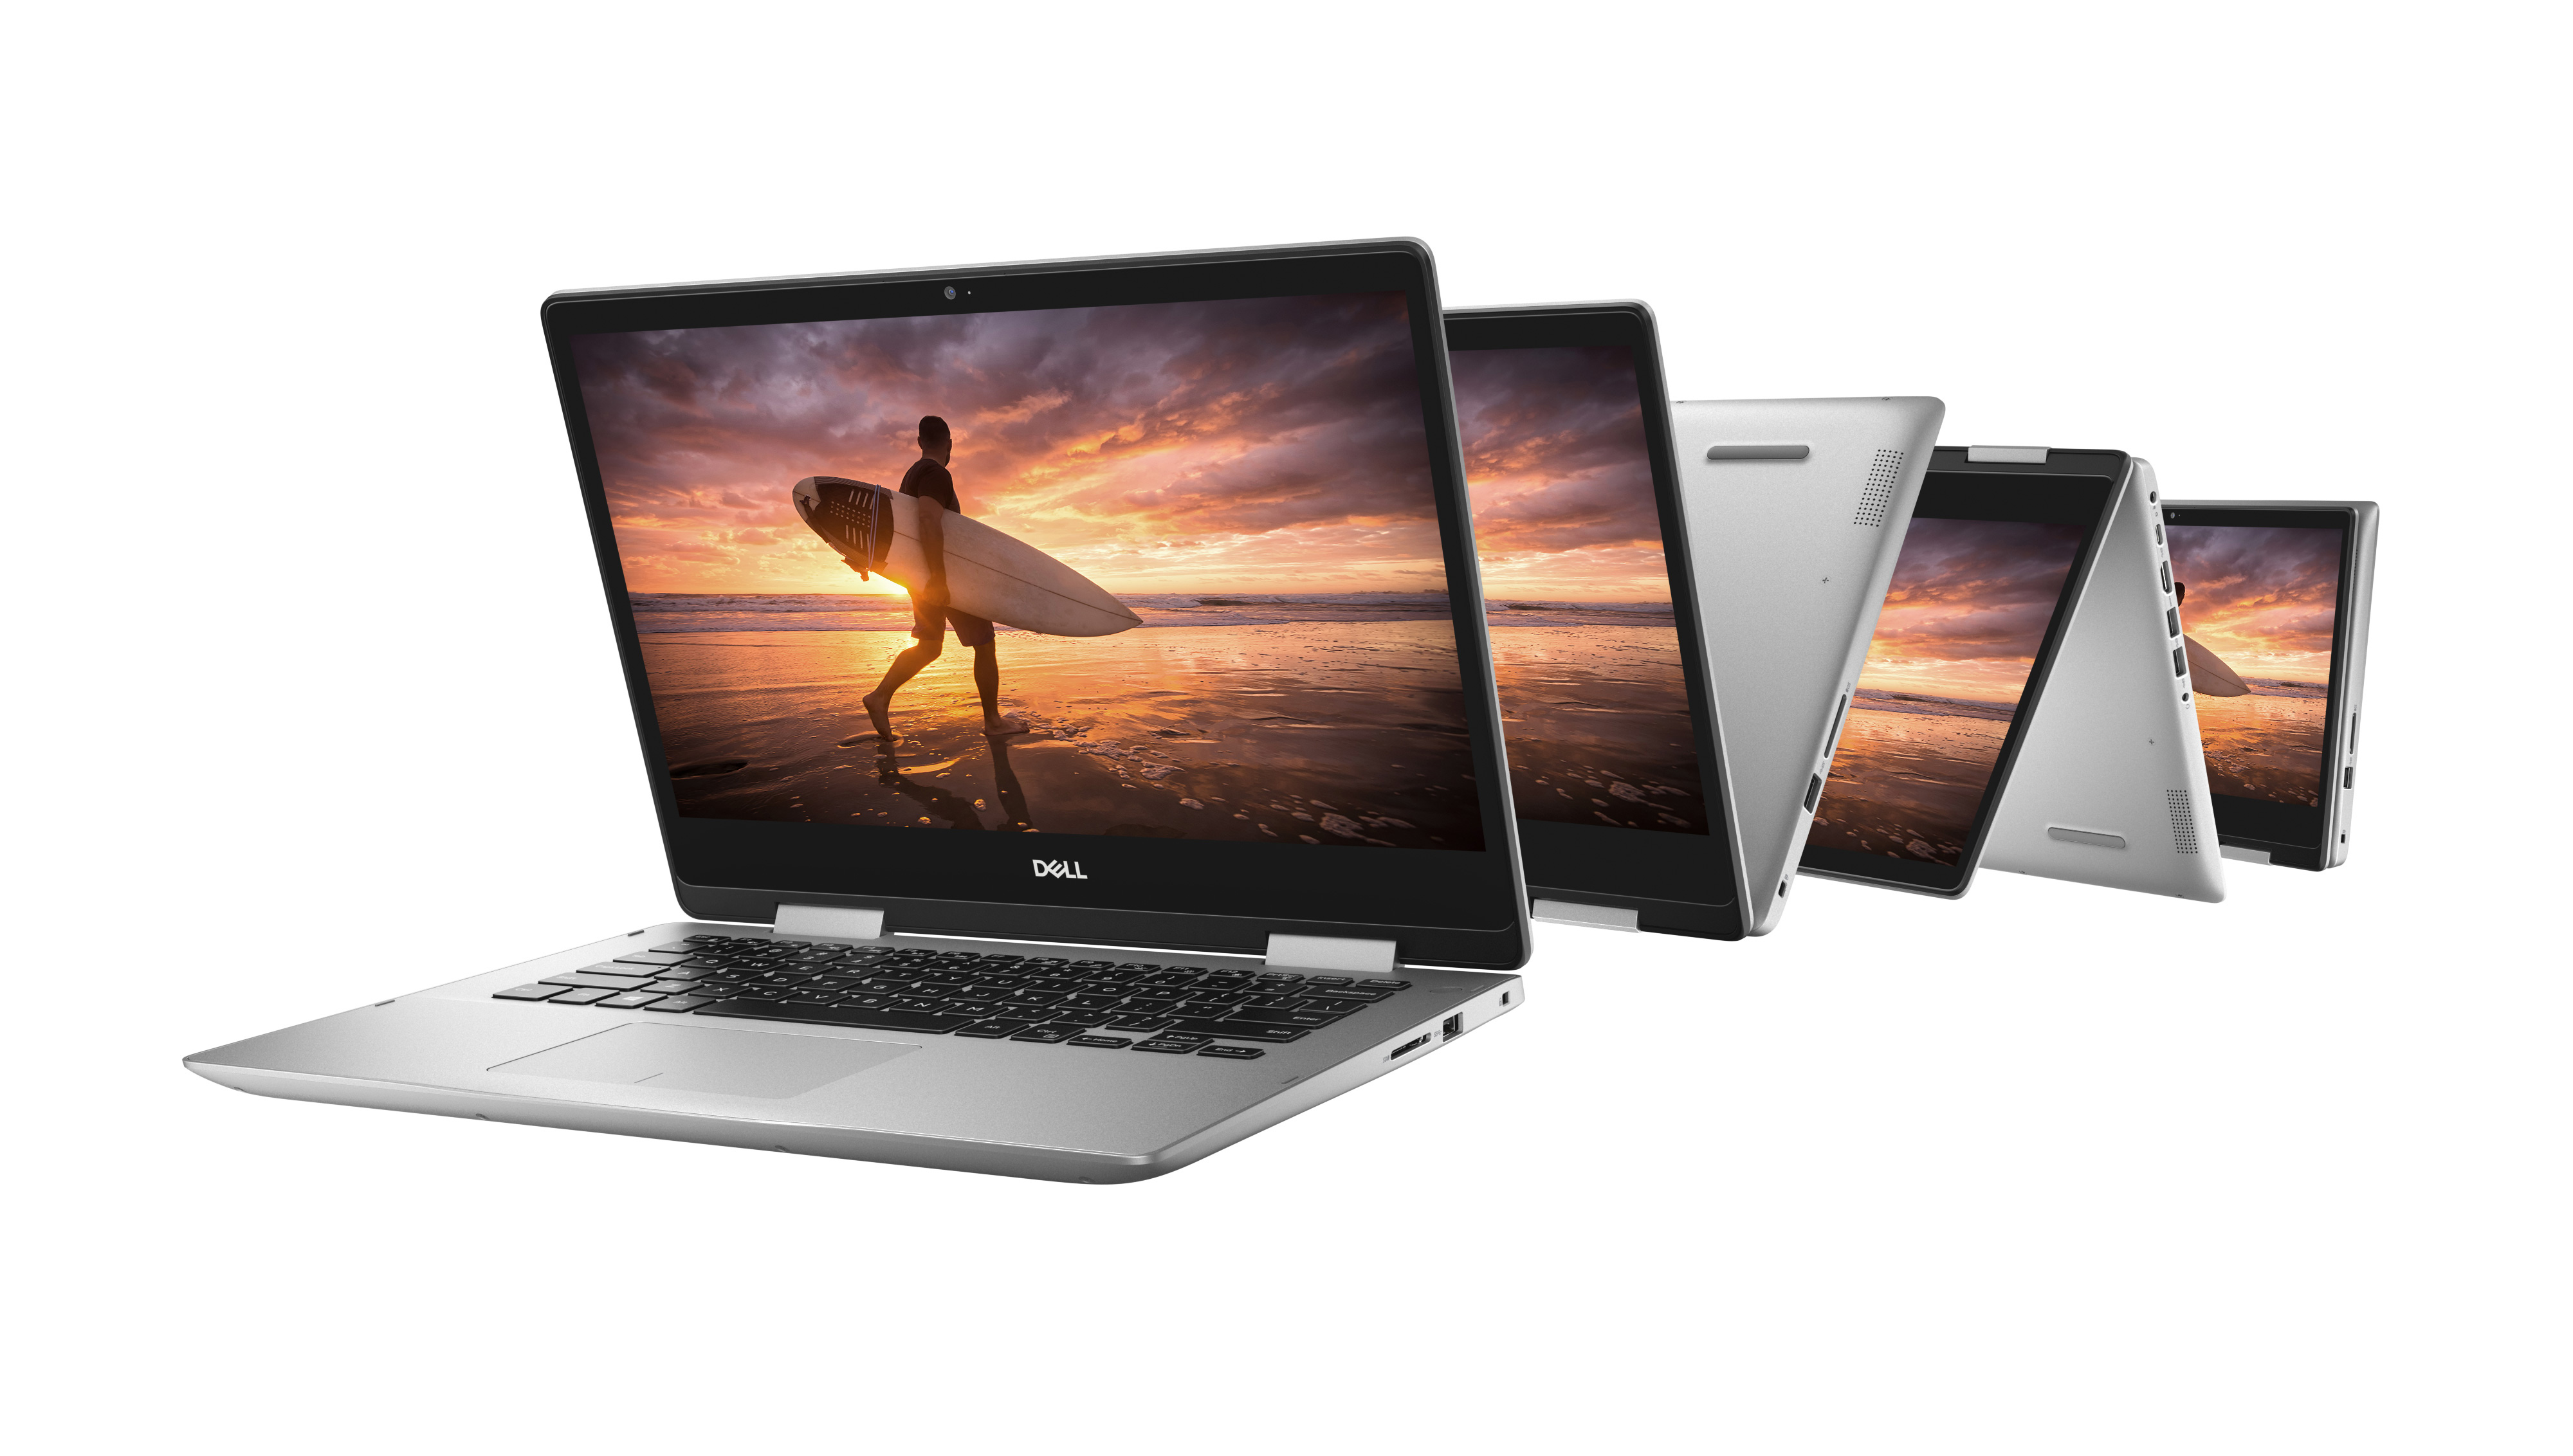 Snazzy Four Dell Inspiron Series Inverted Flat Dell Introduces New Updates Dell Support Assistant Clean Files Dell Support Assistant Has Sped Working dpreview Dell Support Assistant